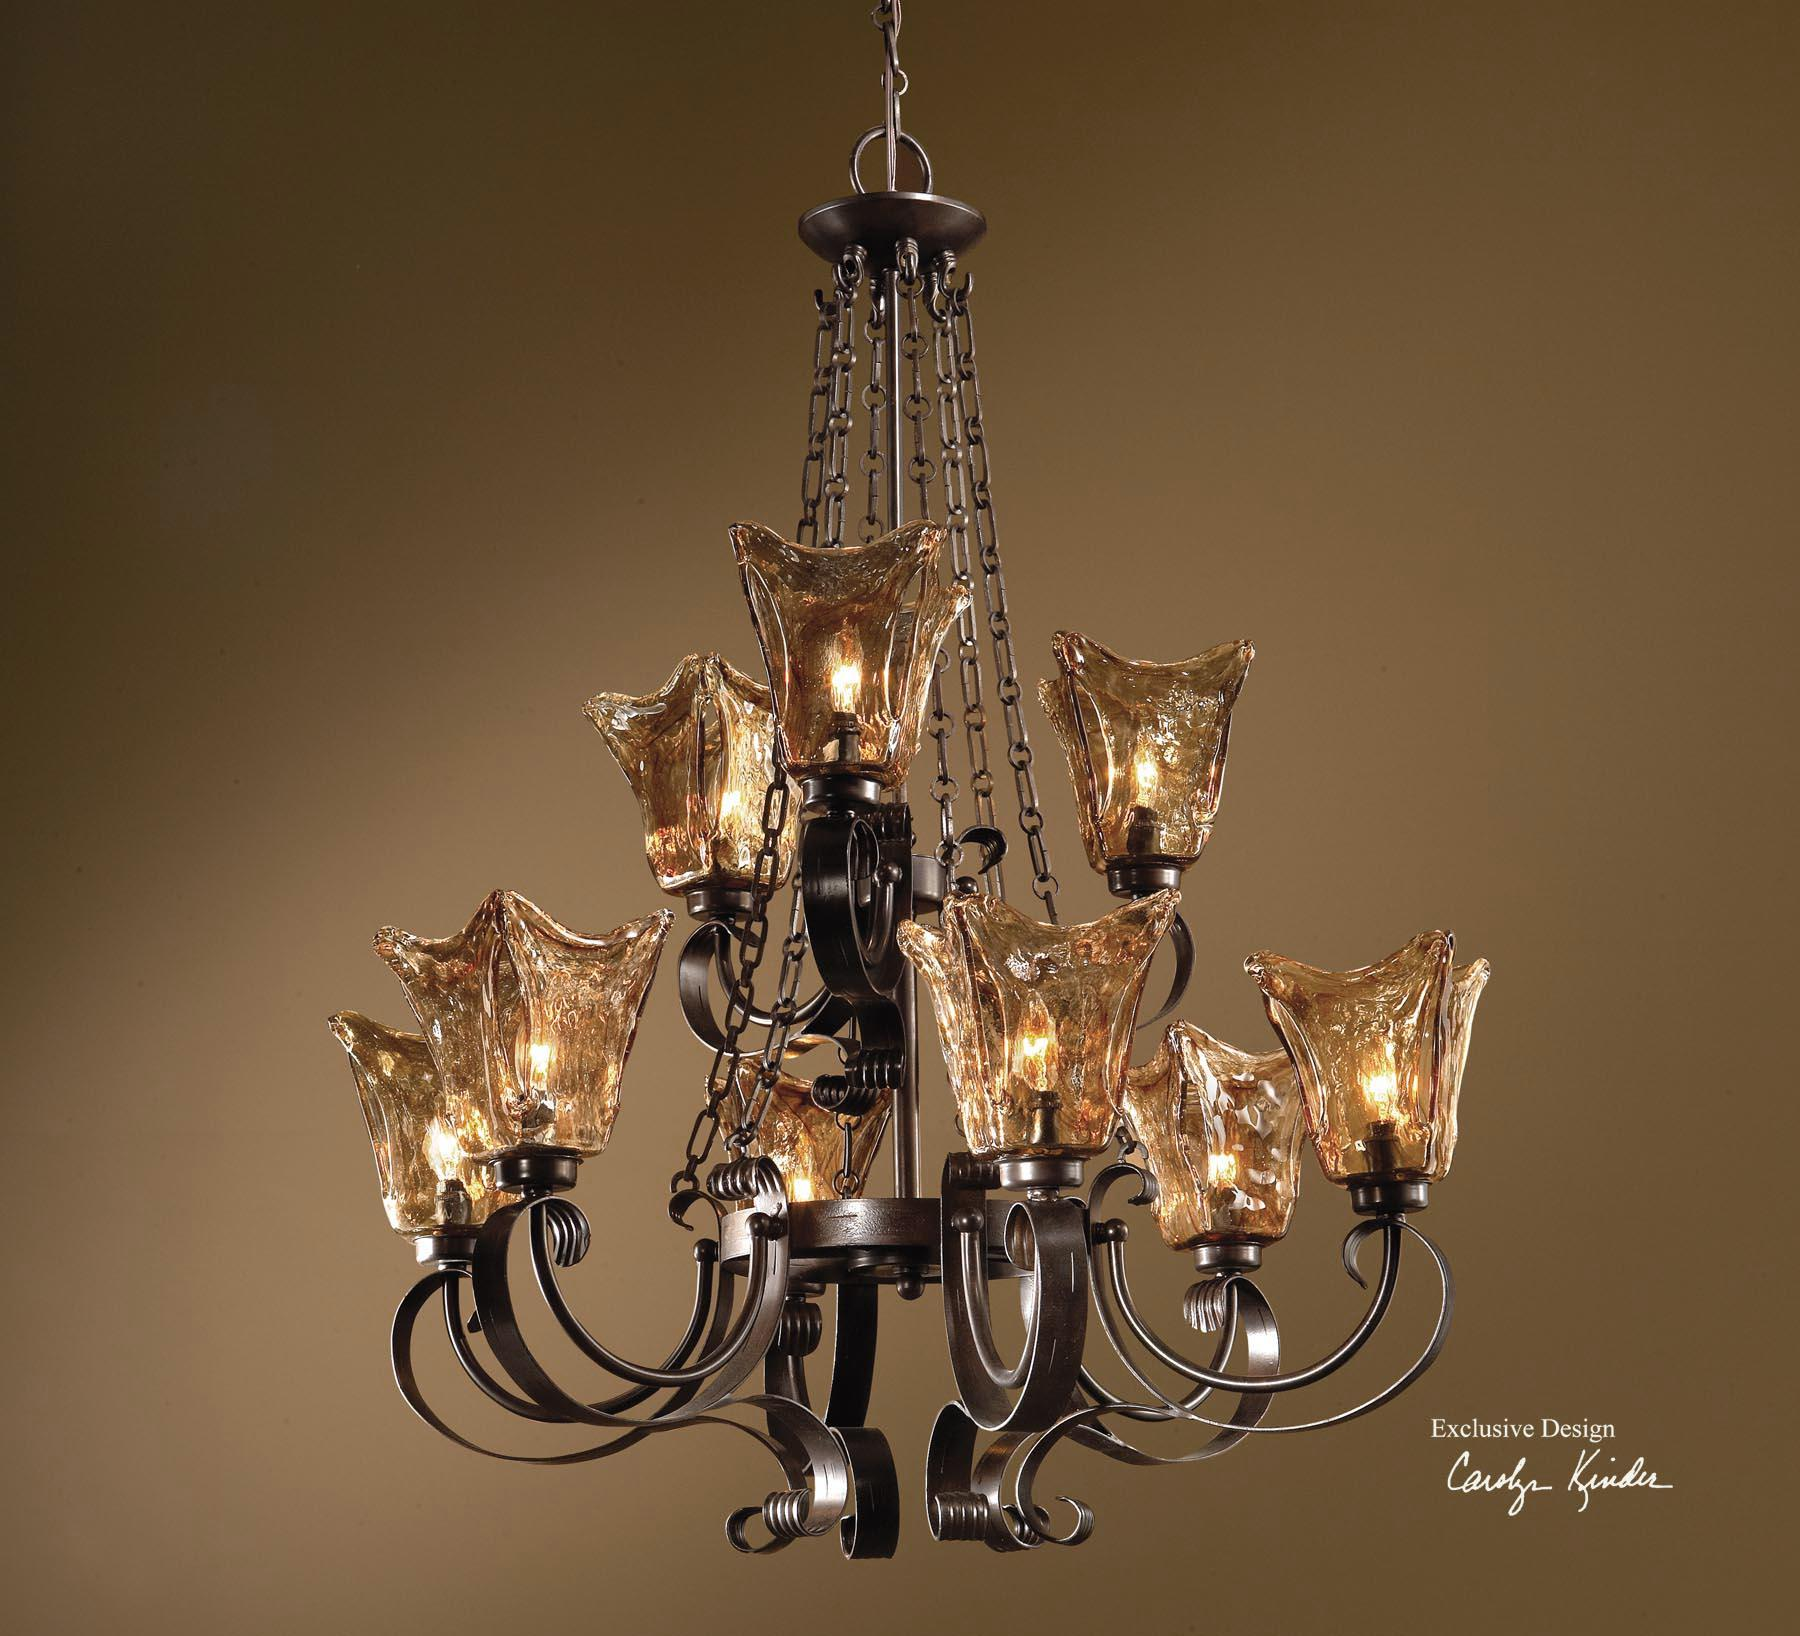 Uttermost Lighting Fixtures Vetraio 9-Light Chandelier - Item Number: 21005